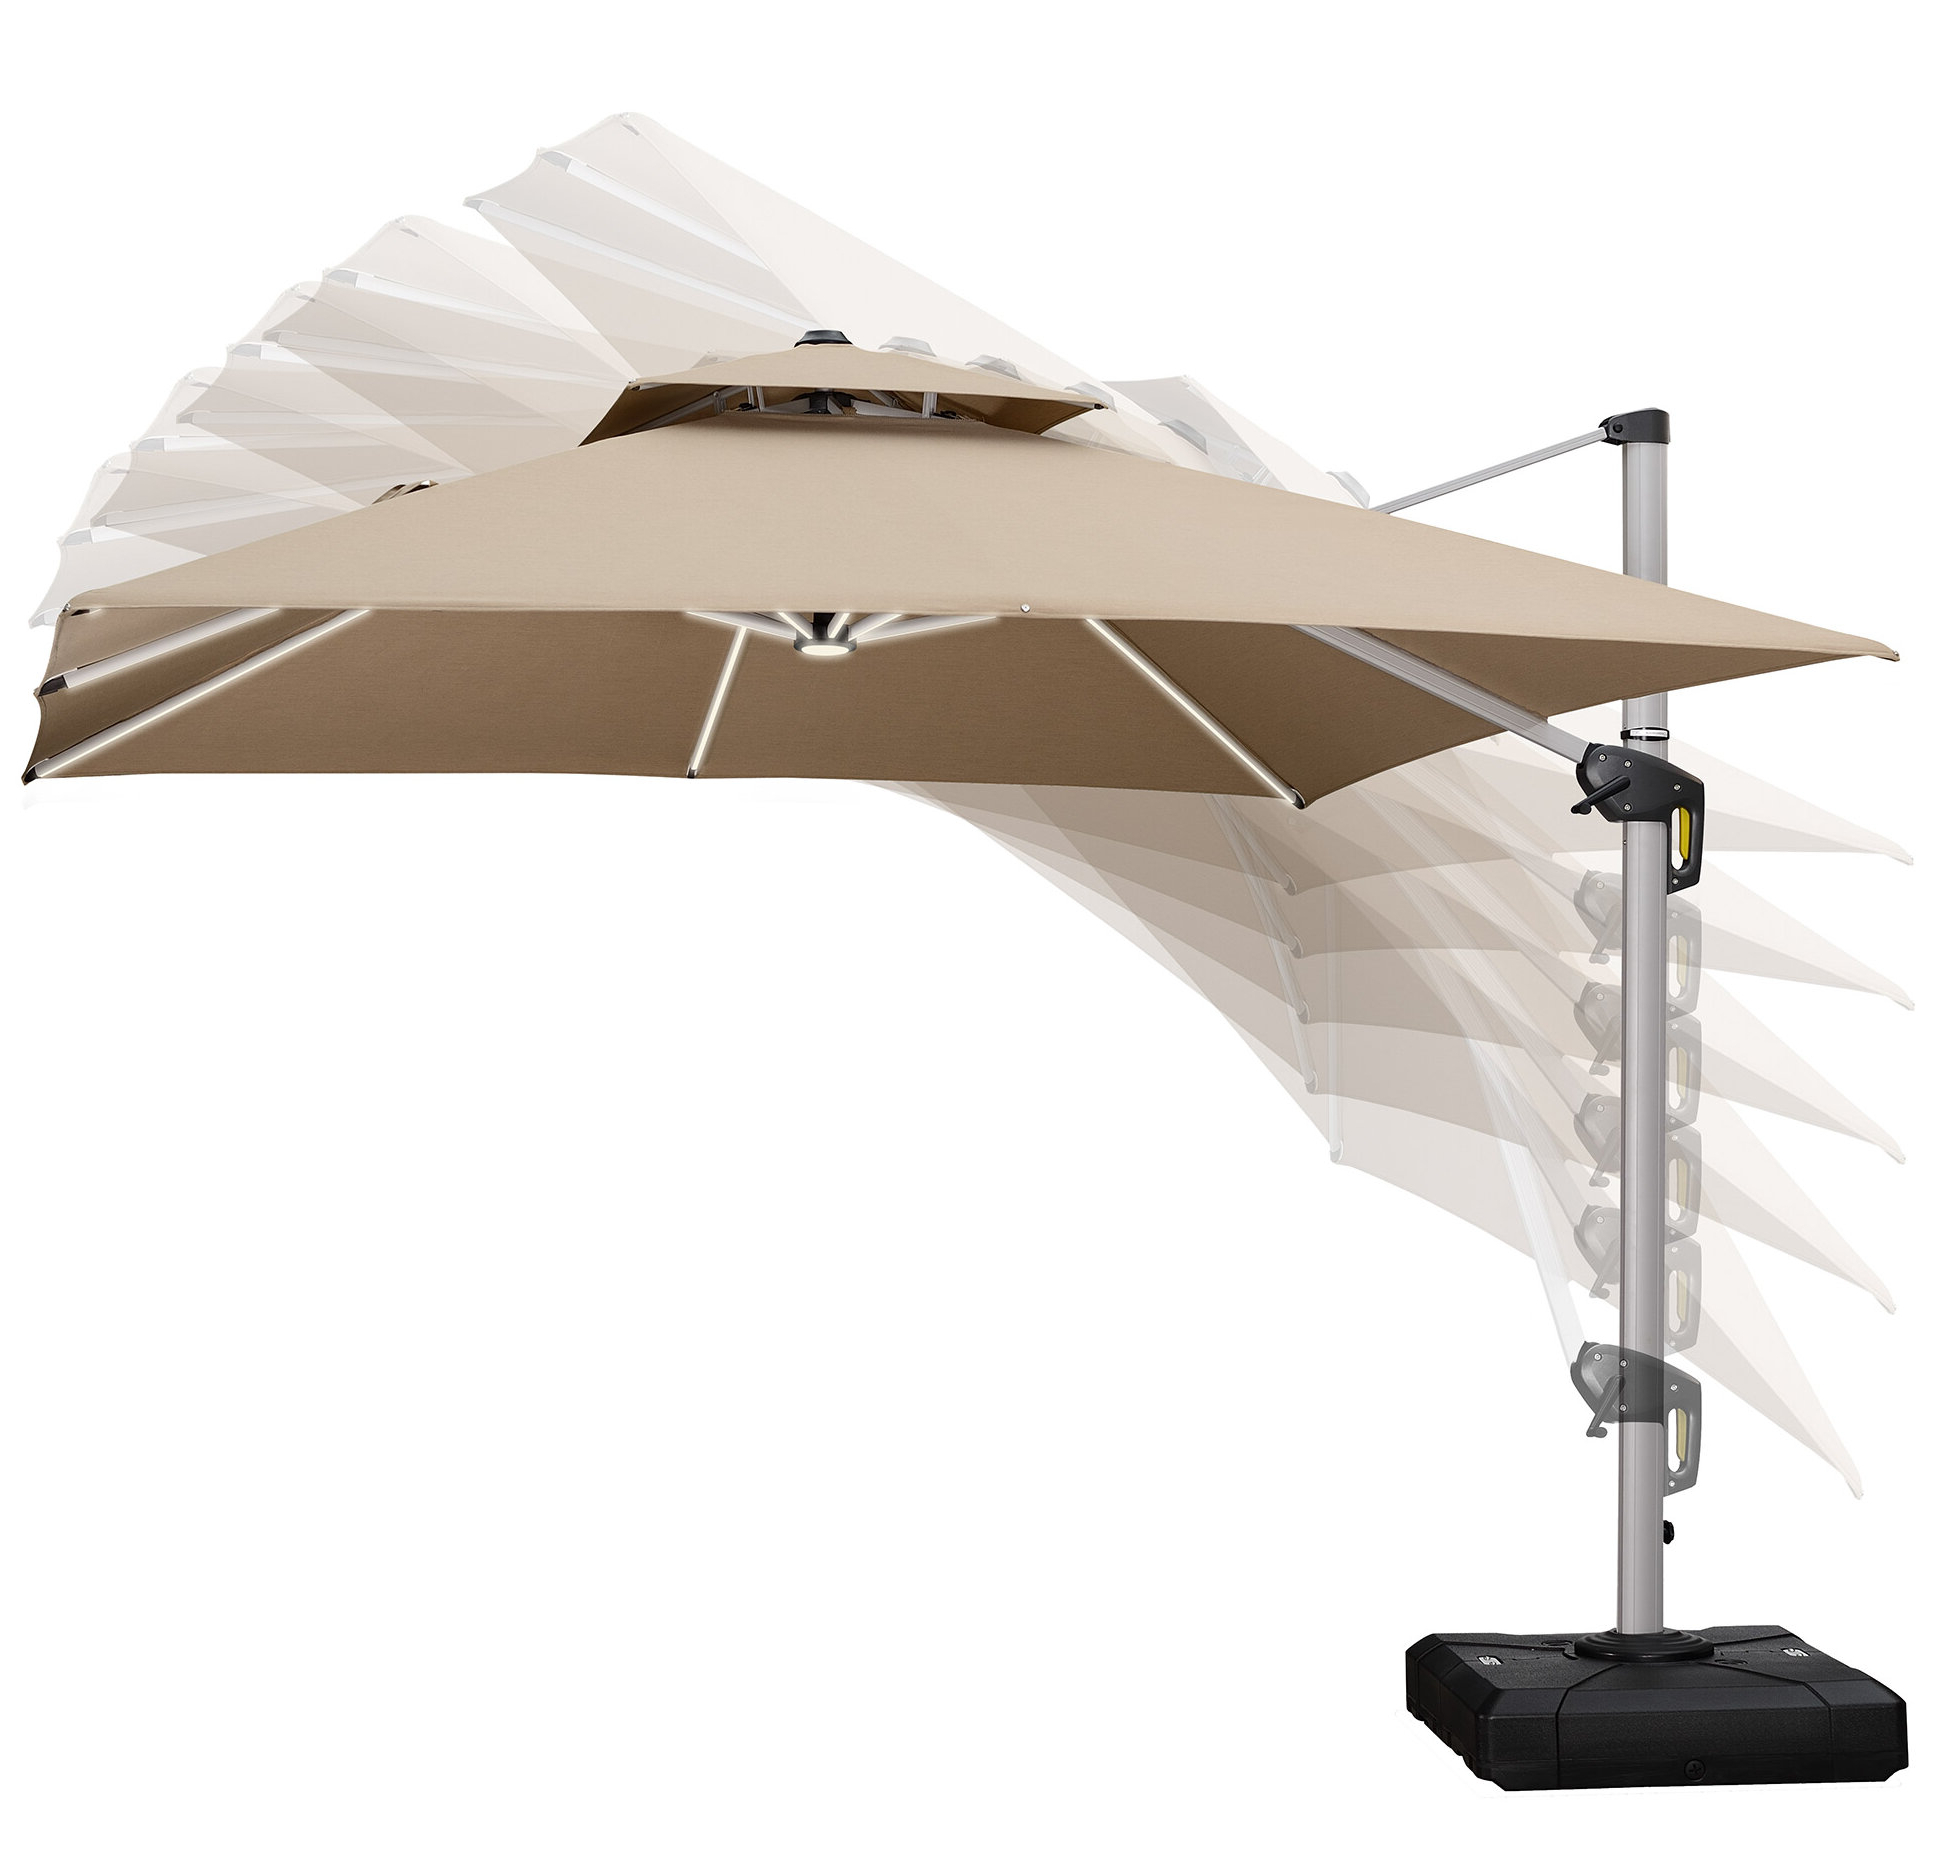 Maidste Square Cantilever Umbrellas Throughout Best And Newest Dermott 10' Square Cantilever Umbrella (View 4 of 20)